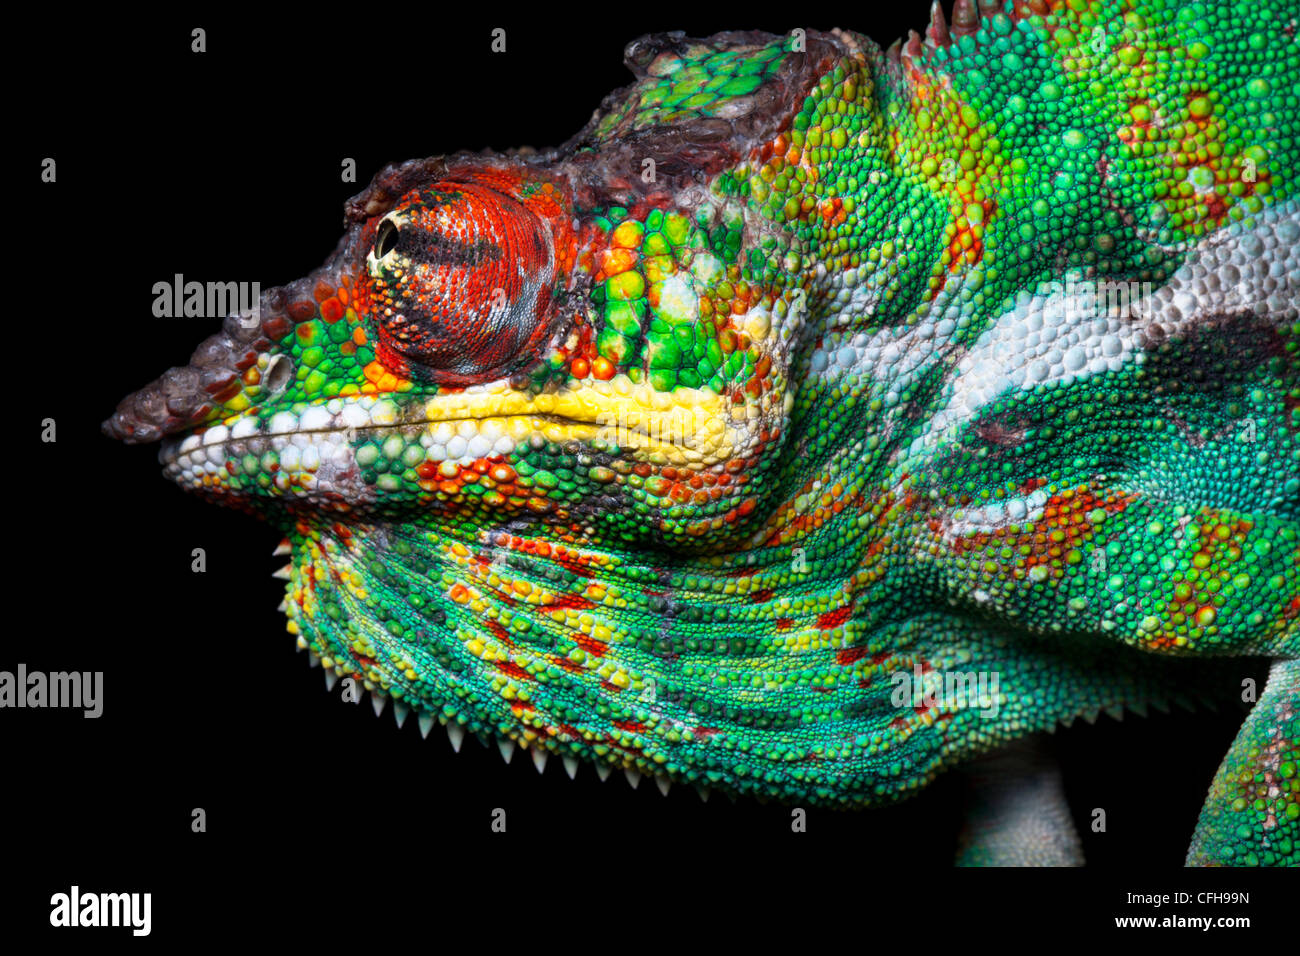 Panther chameleon male in threat display, Madagascar. - Stock Image